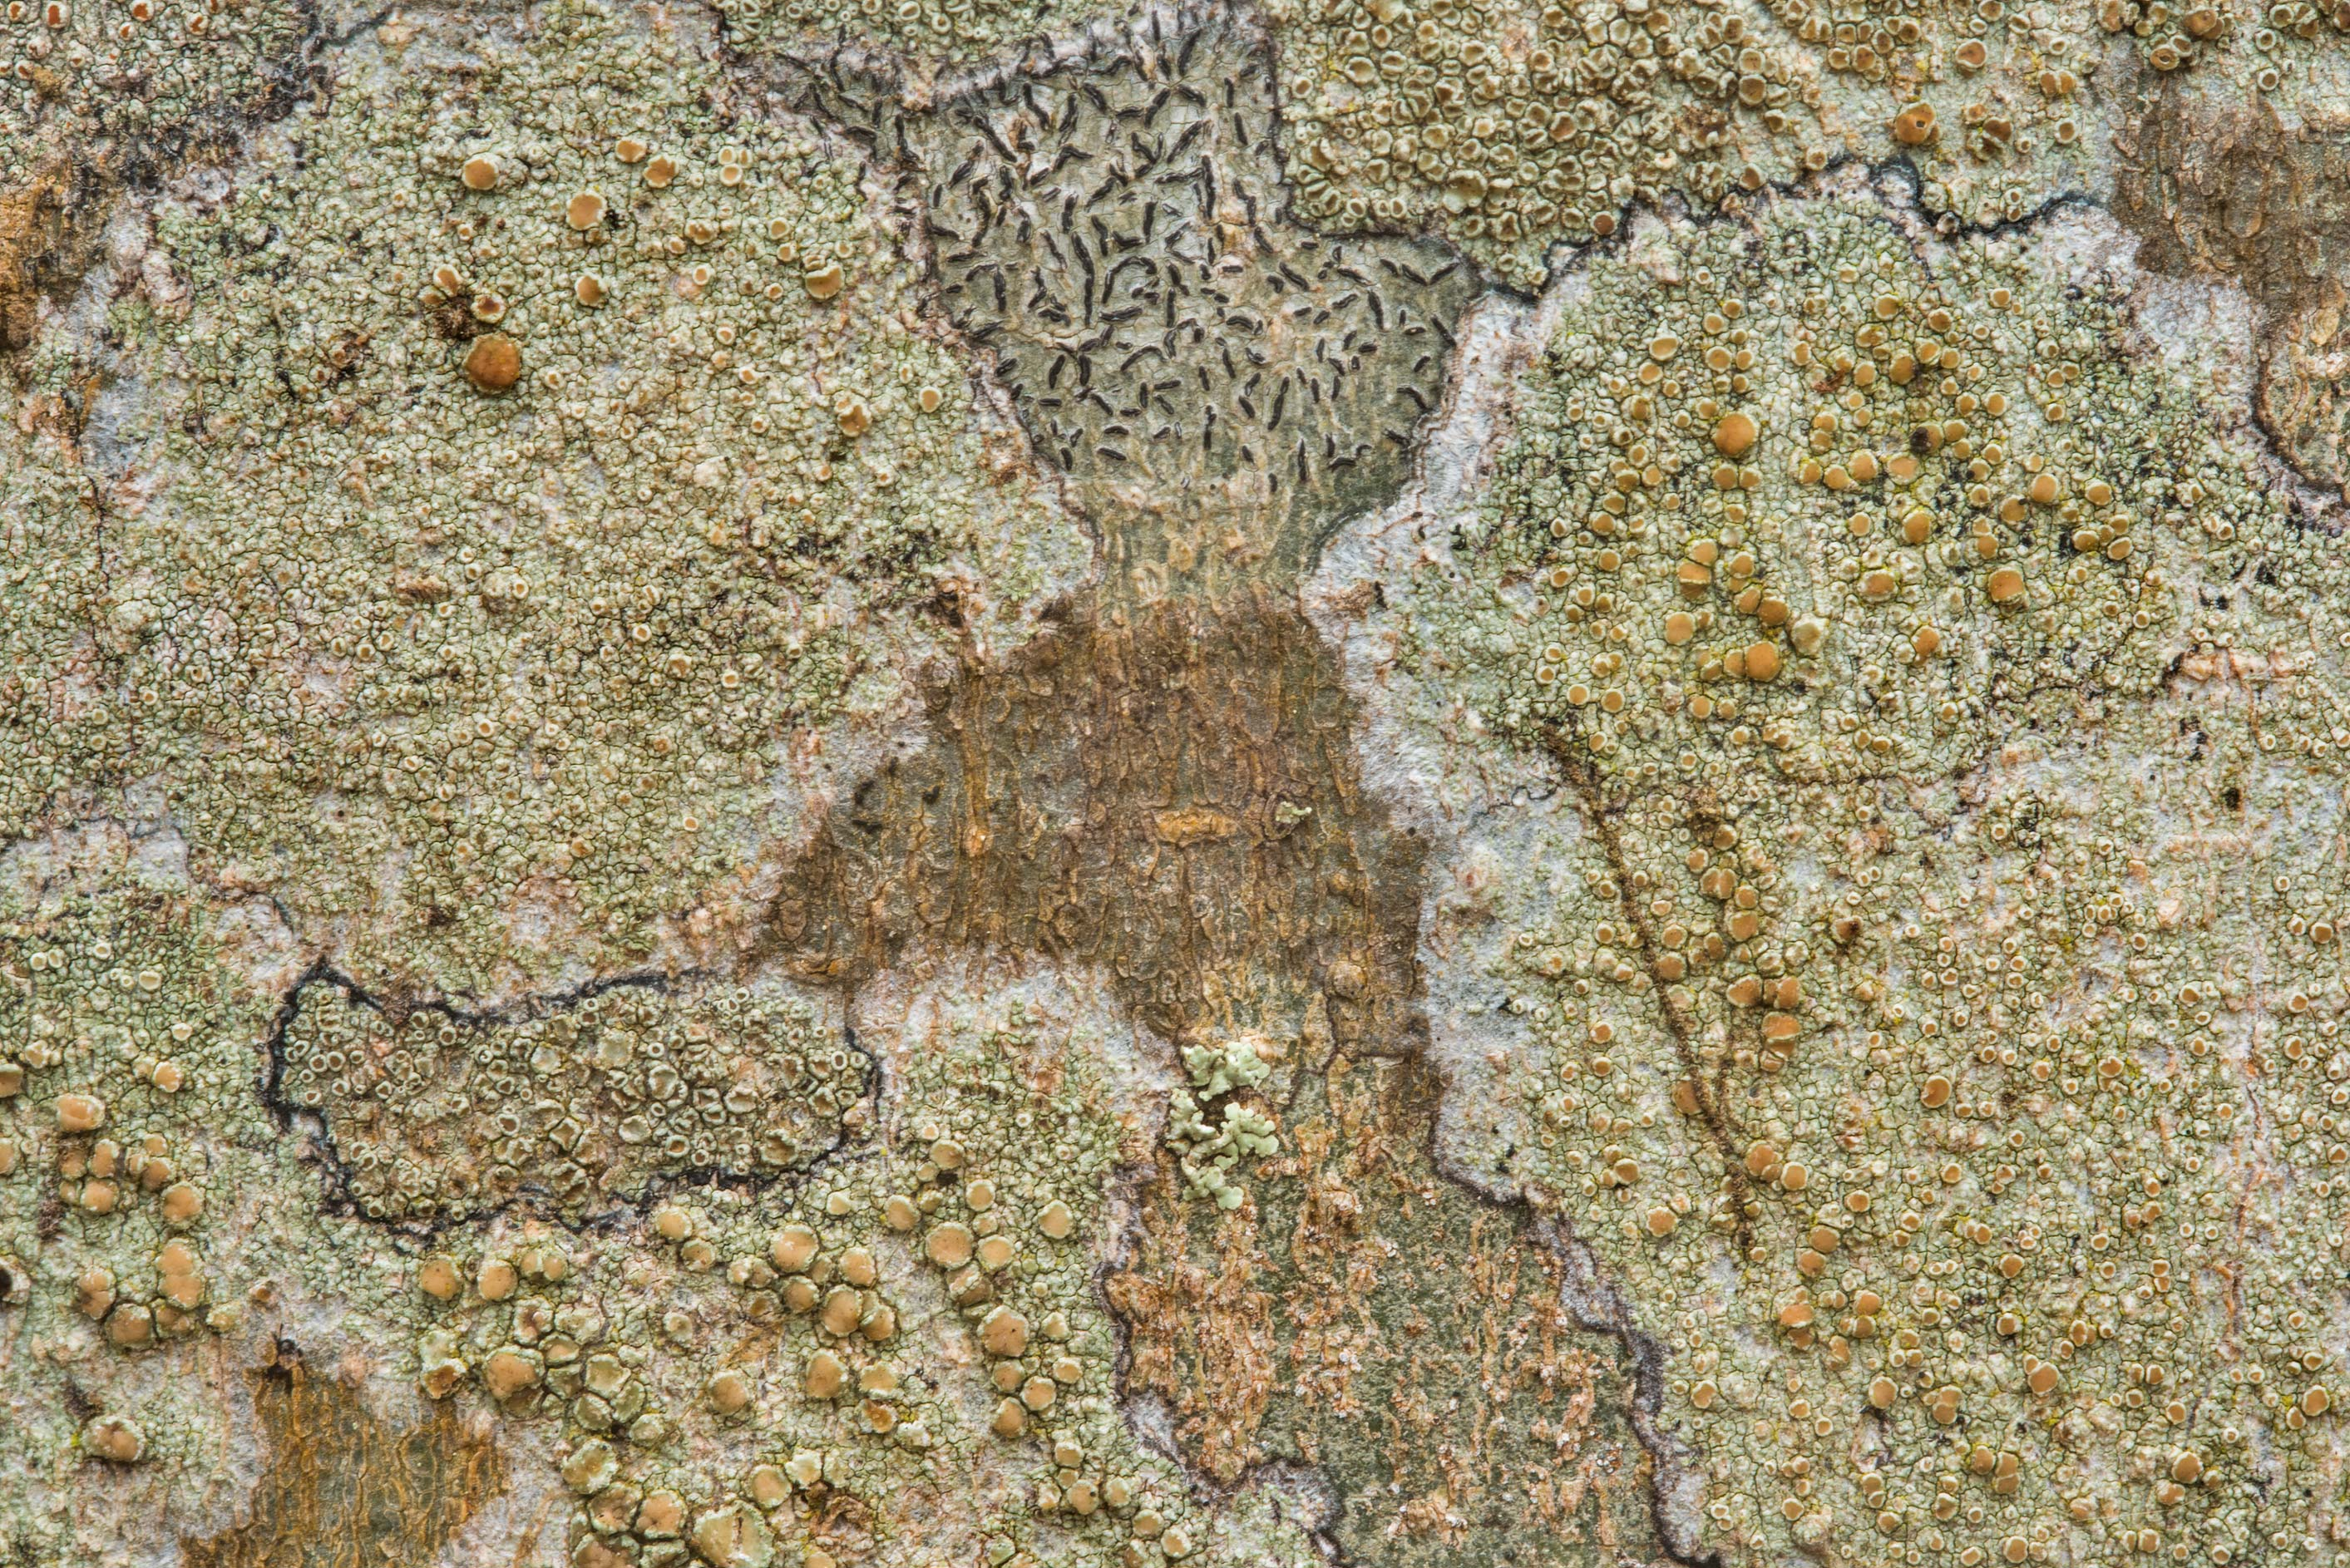 Mixed crustose lichens on bark of a hackberry...State Historic Site. Washington, Texas